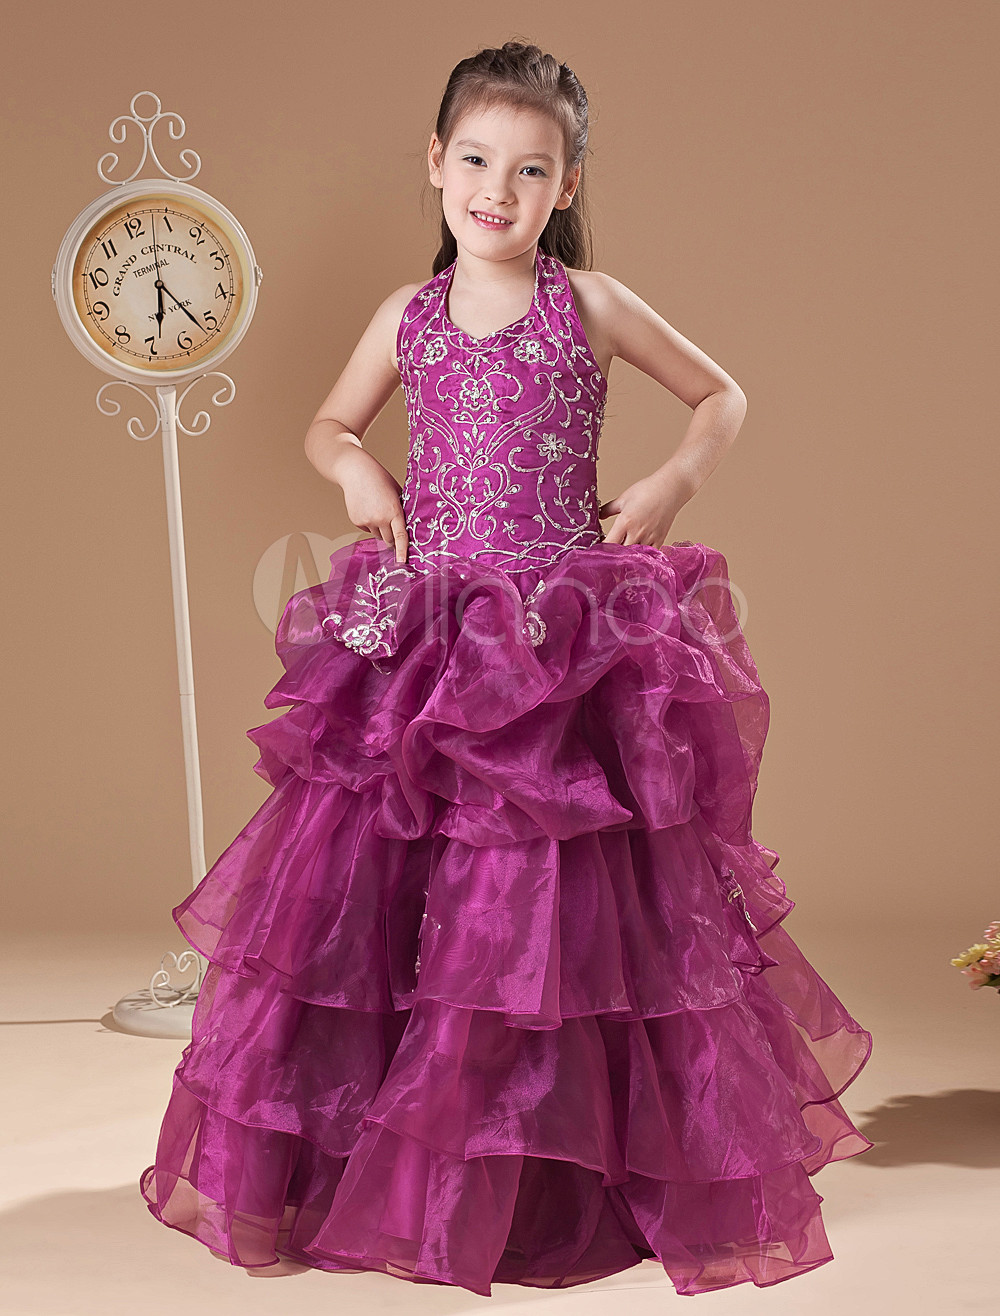 5c99e9feca5c Flower Girl Dresses Rose Halter Lace Embroidered Little Girls Pageant Dresses  Ball Gown Organza Ruffles Tiered First Communion Dress - Milanoo.com